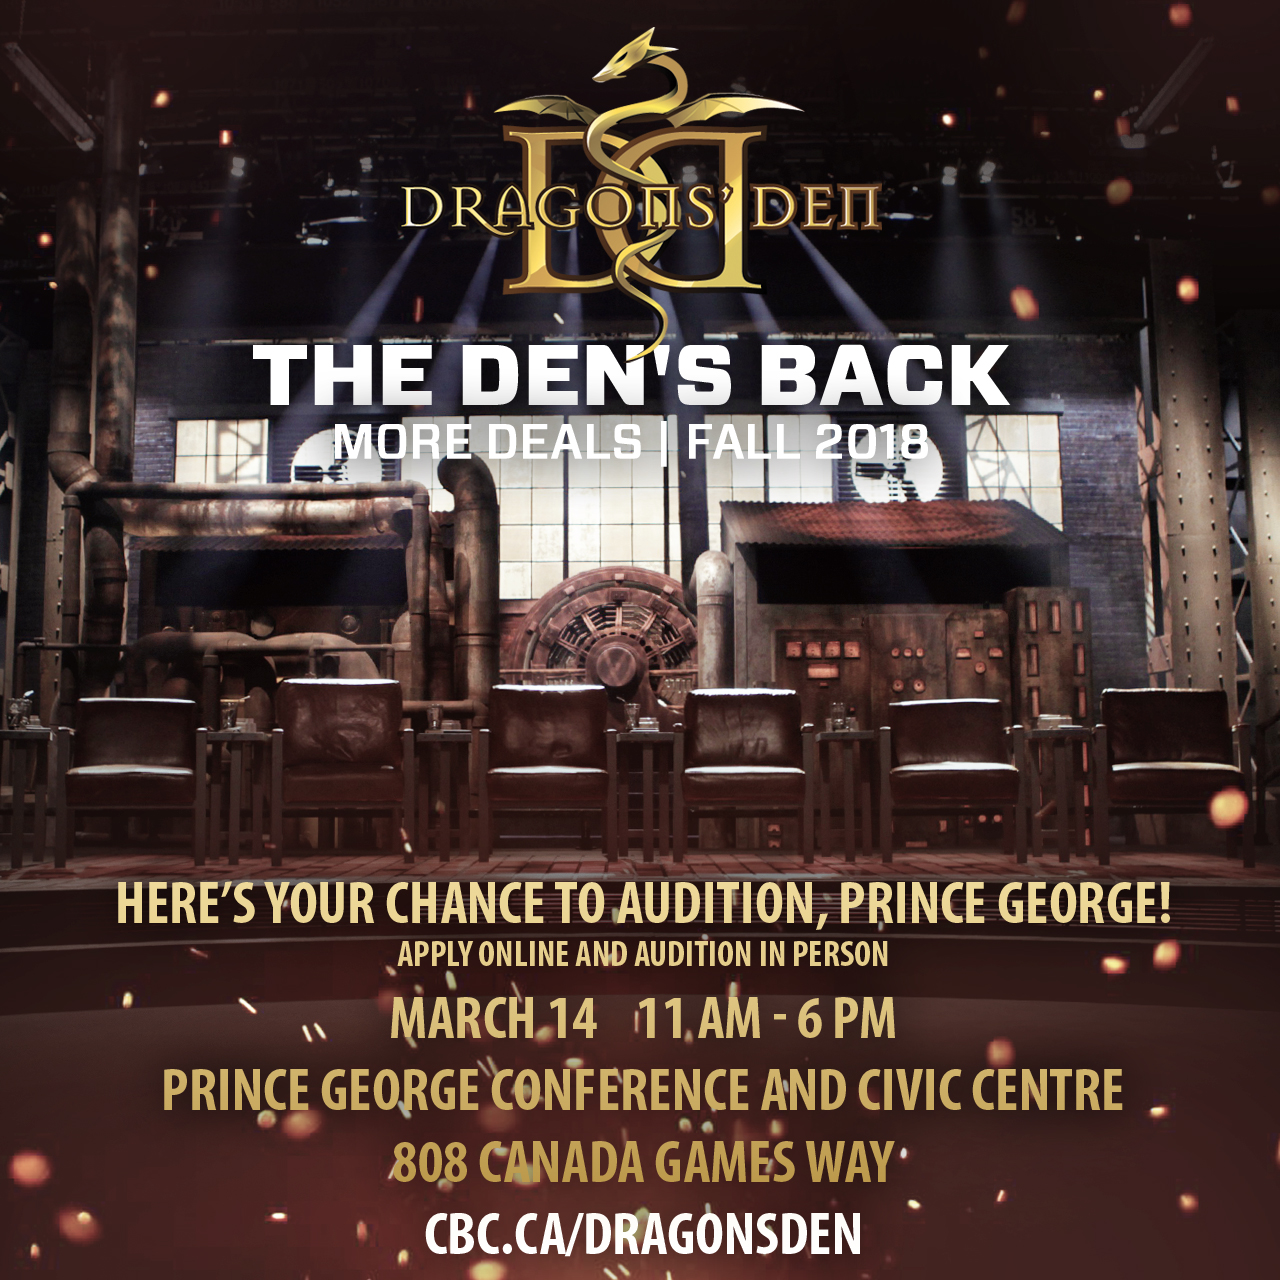 Dragon's Den auditions here March 14 – Prince George Daily News